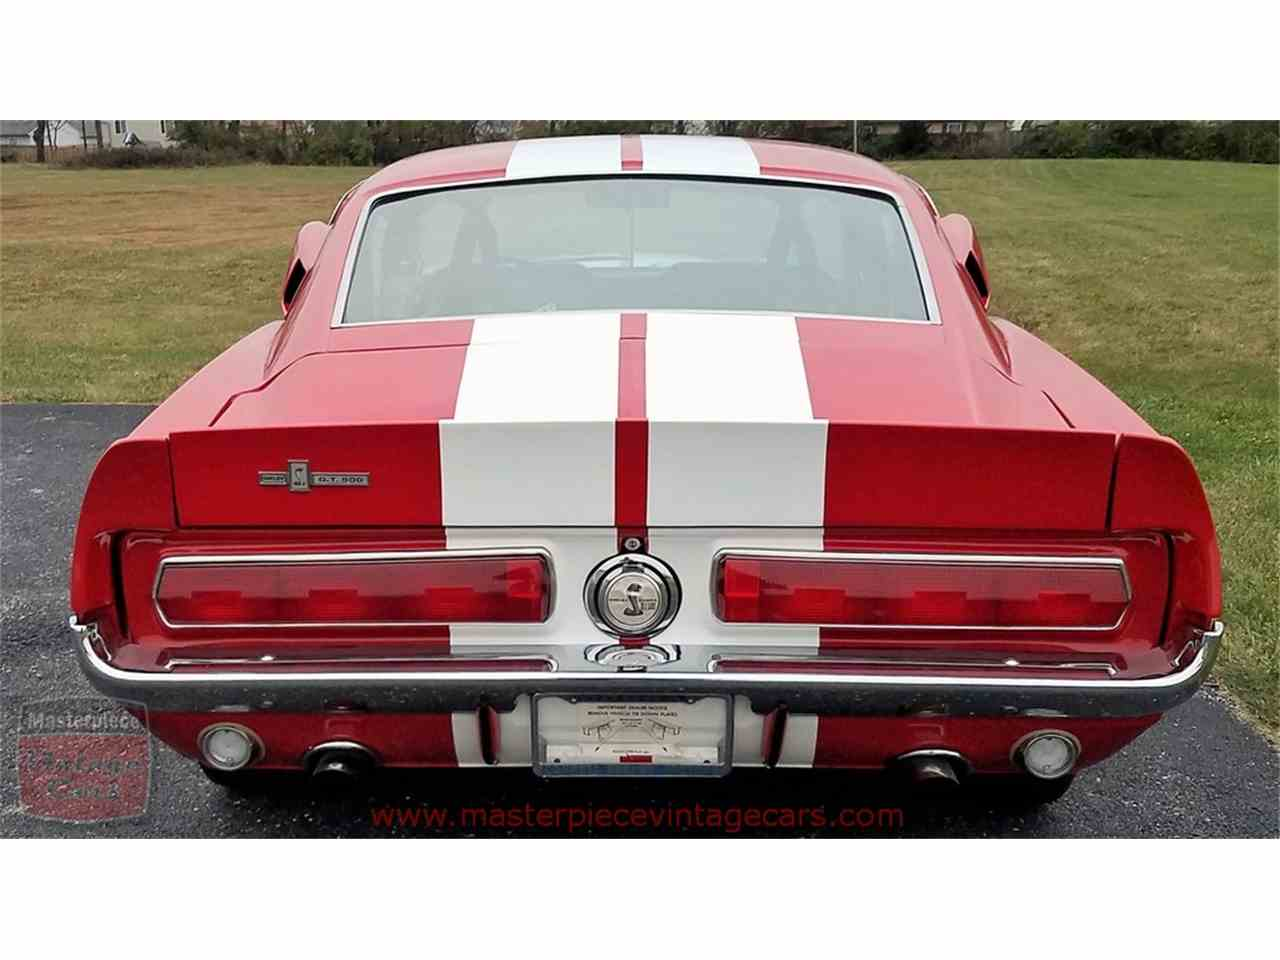 Large Picture of '67 Shelby GT500 located in Whiteland Indiana - $299,900.00 Offered by Masterpiece Vintage Cars - MFLG